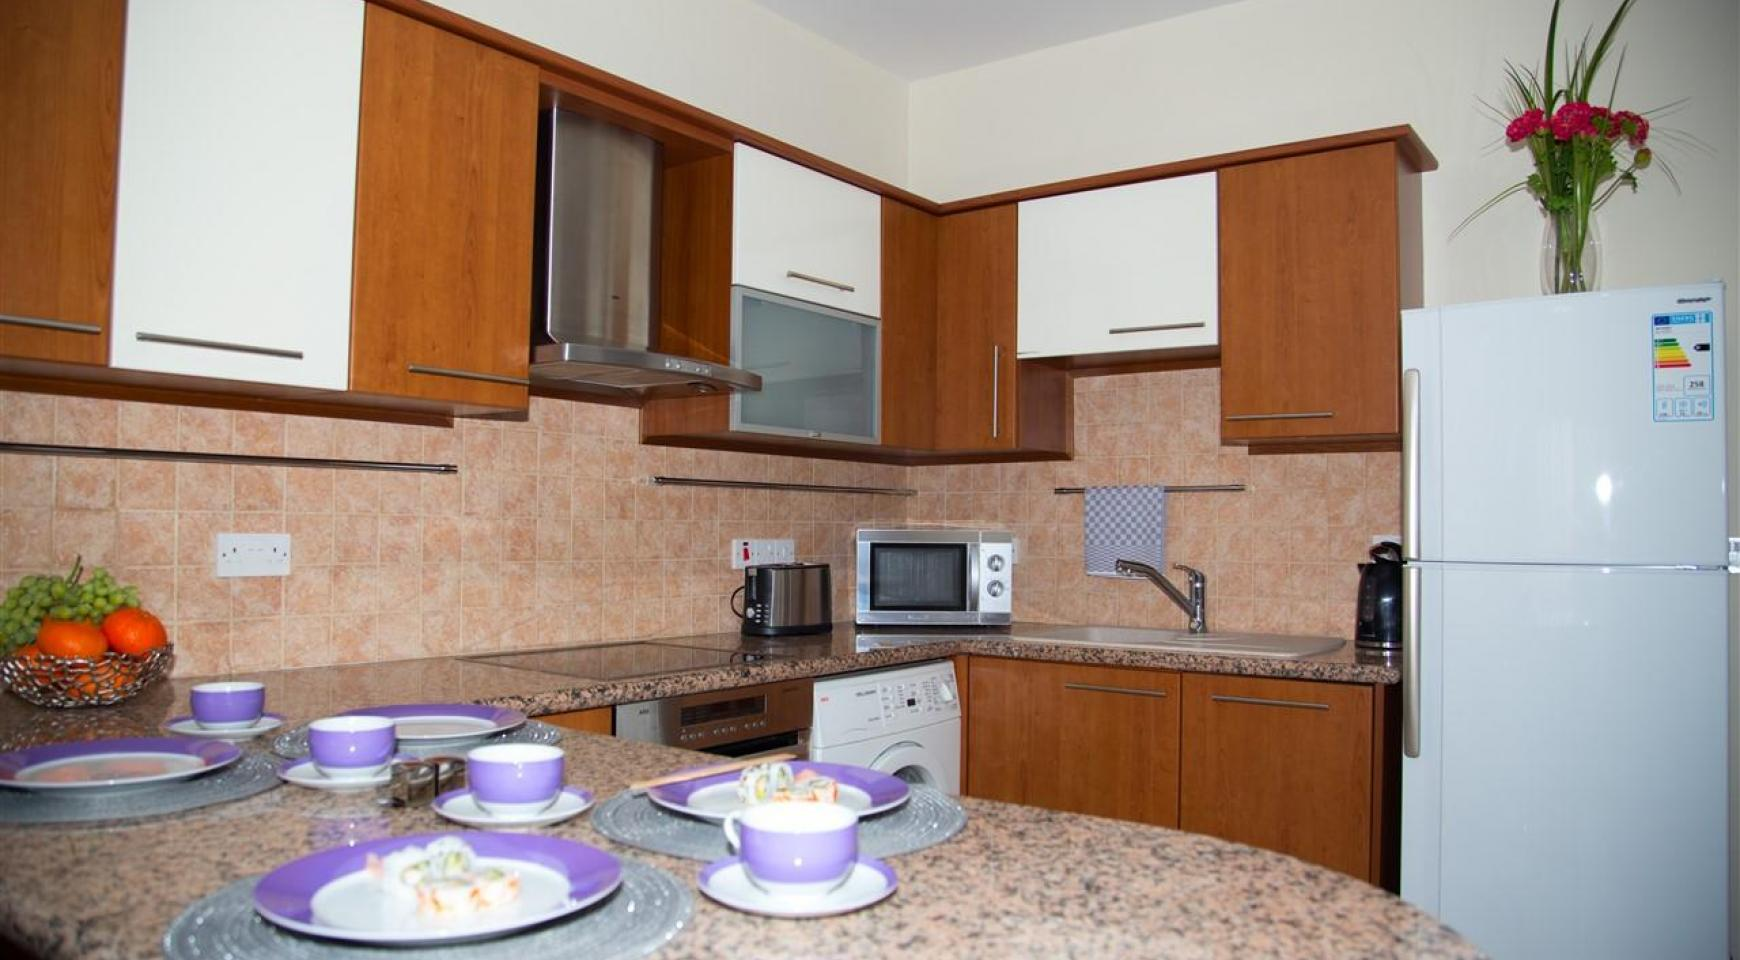 Αντίγραφο Luxury 2 Bedroom Apartment Mesogios Iris 304 in the Tourist area near the Beach - 12